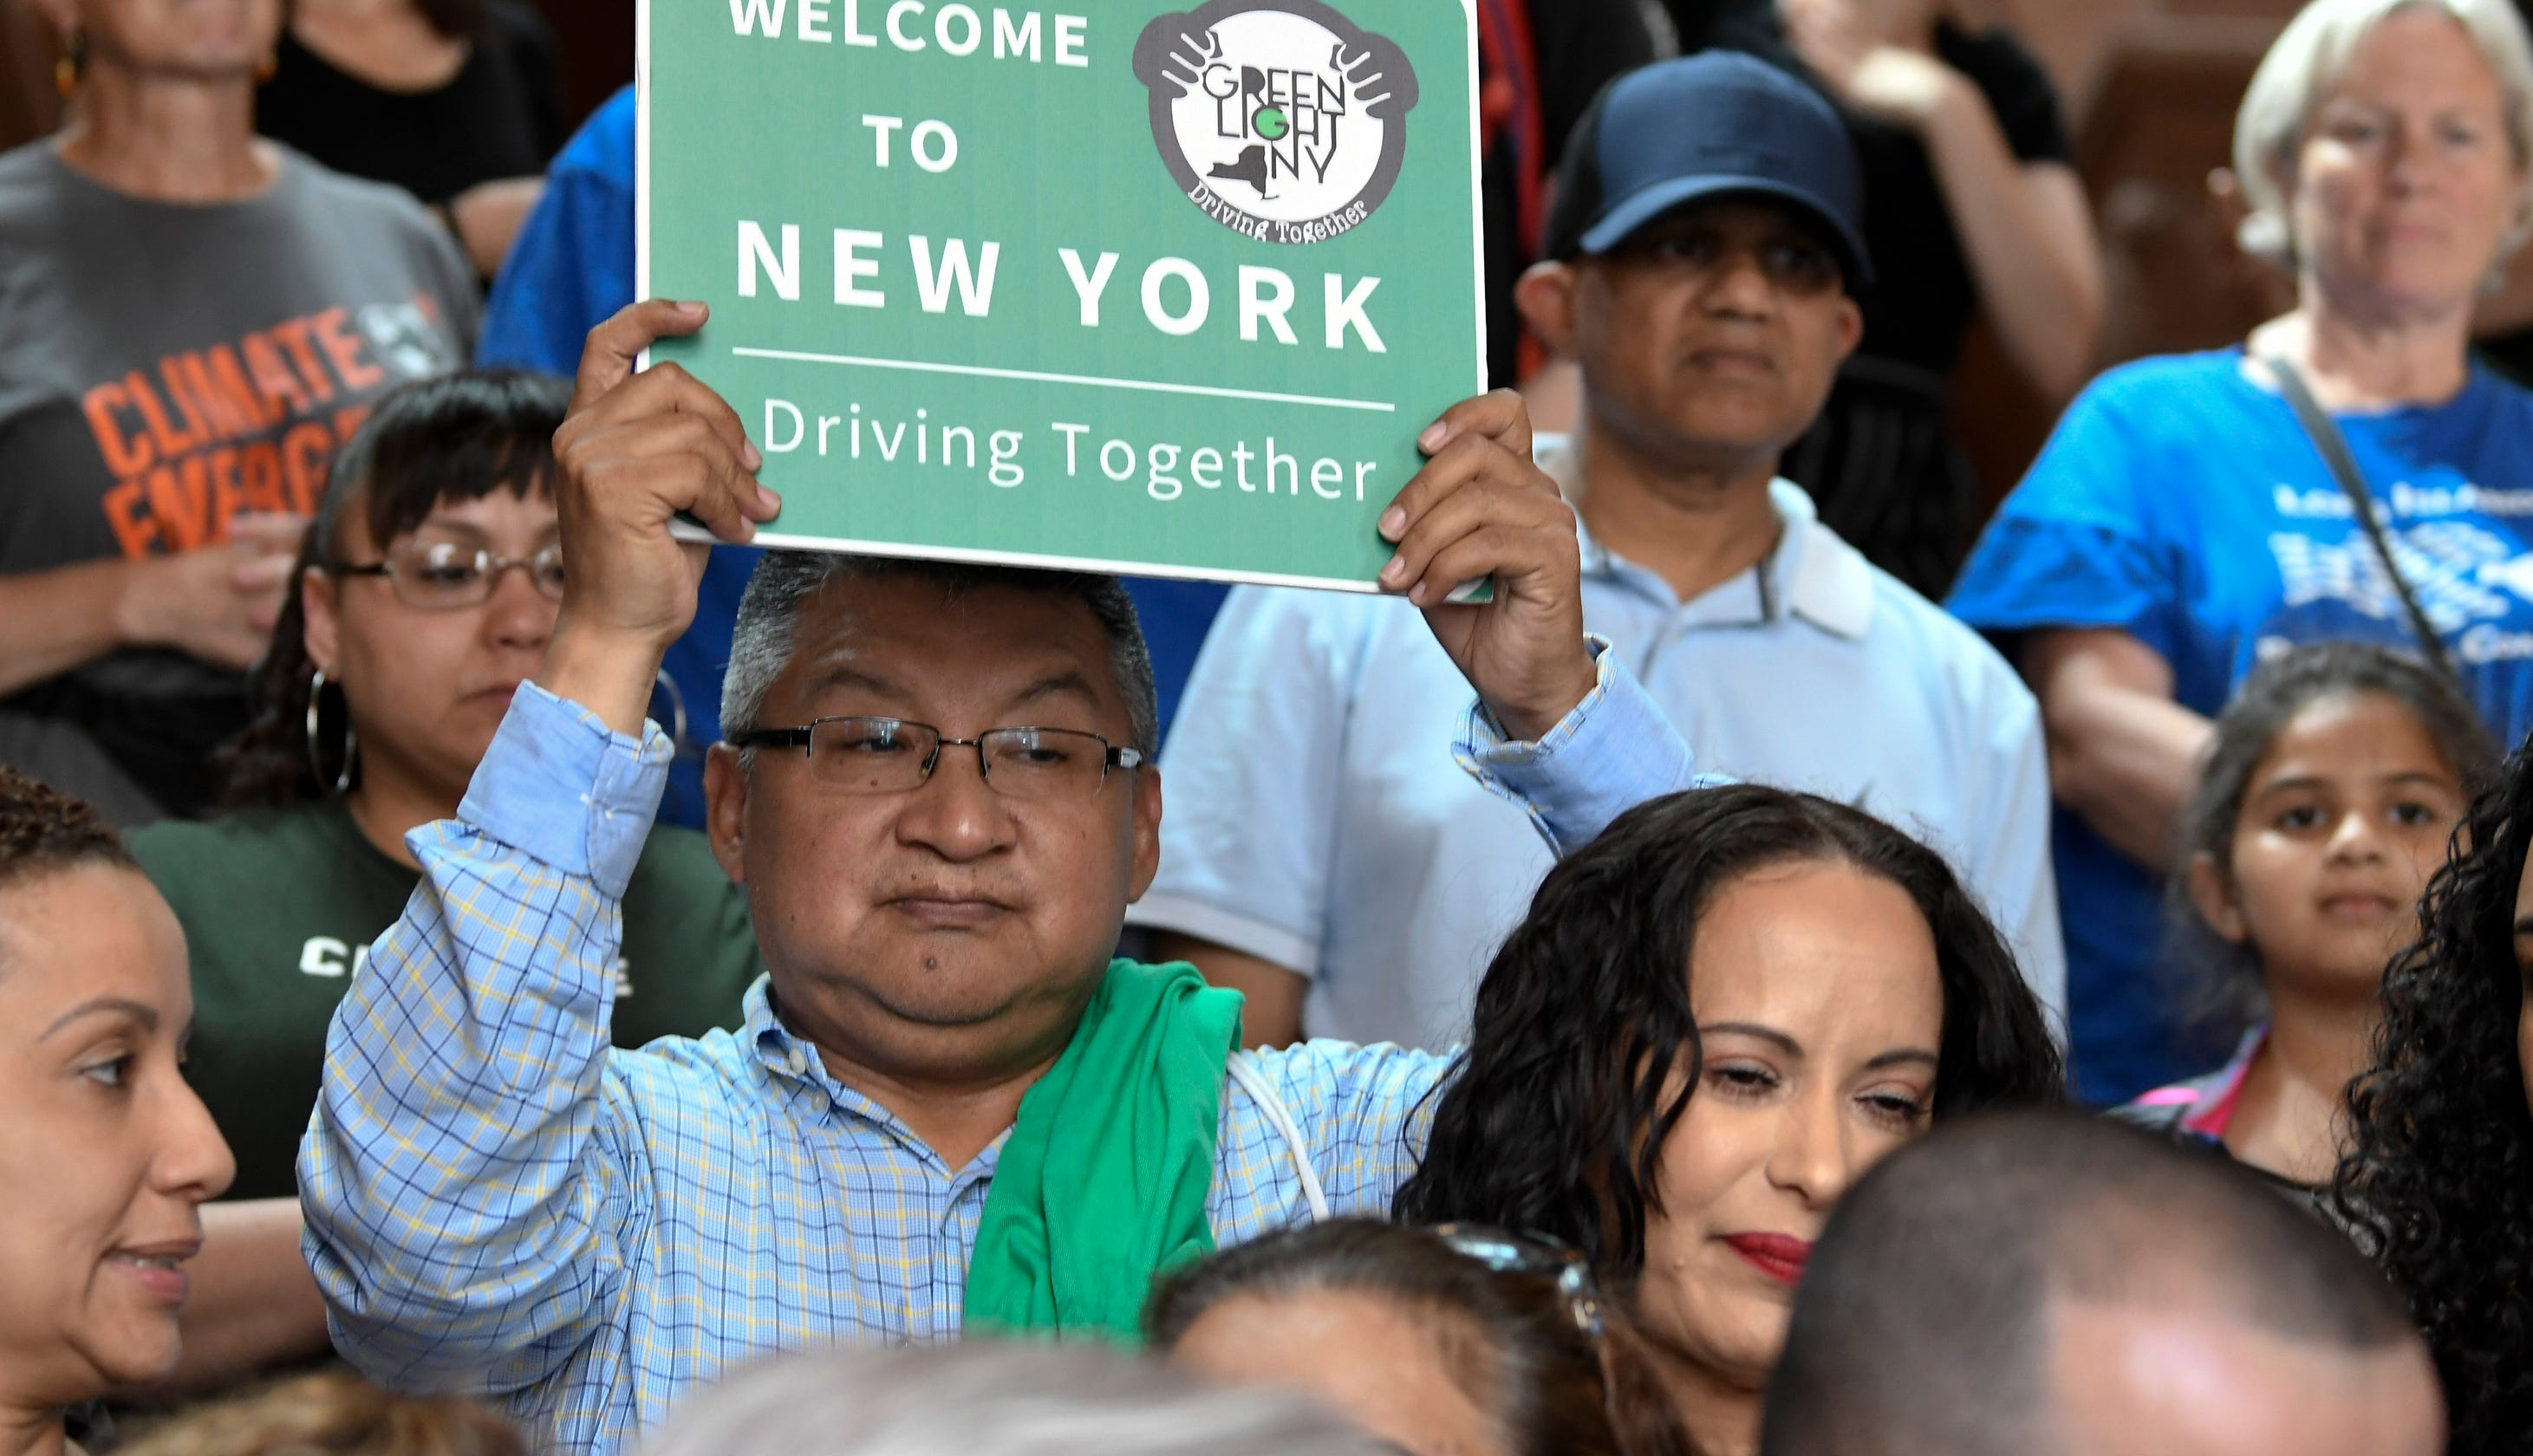 NY drivers license: Green Light bill allows undocumented